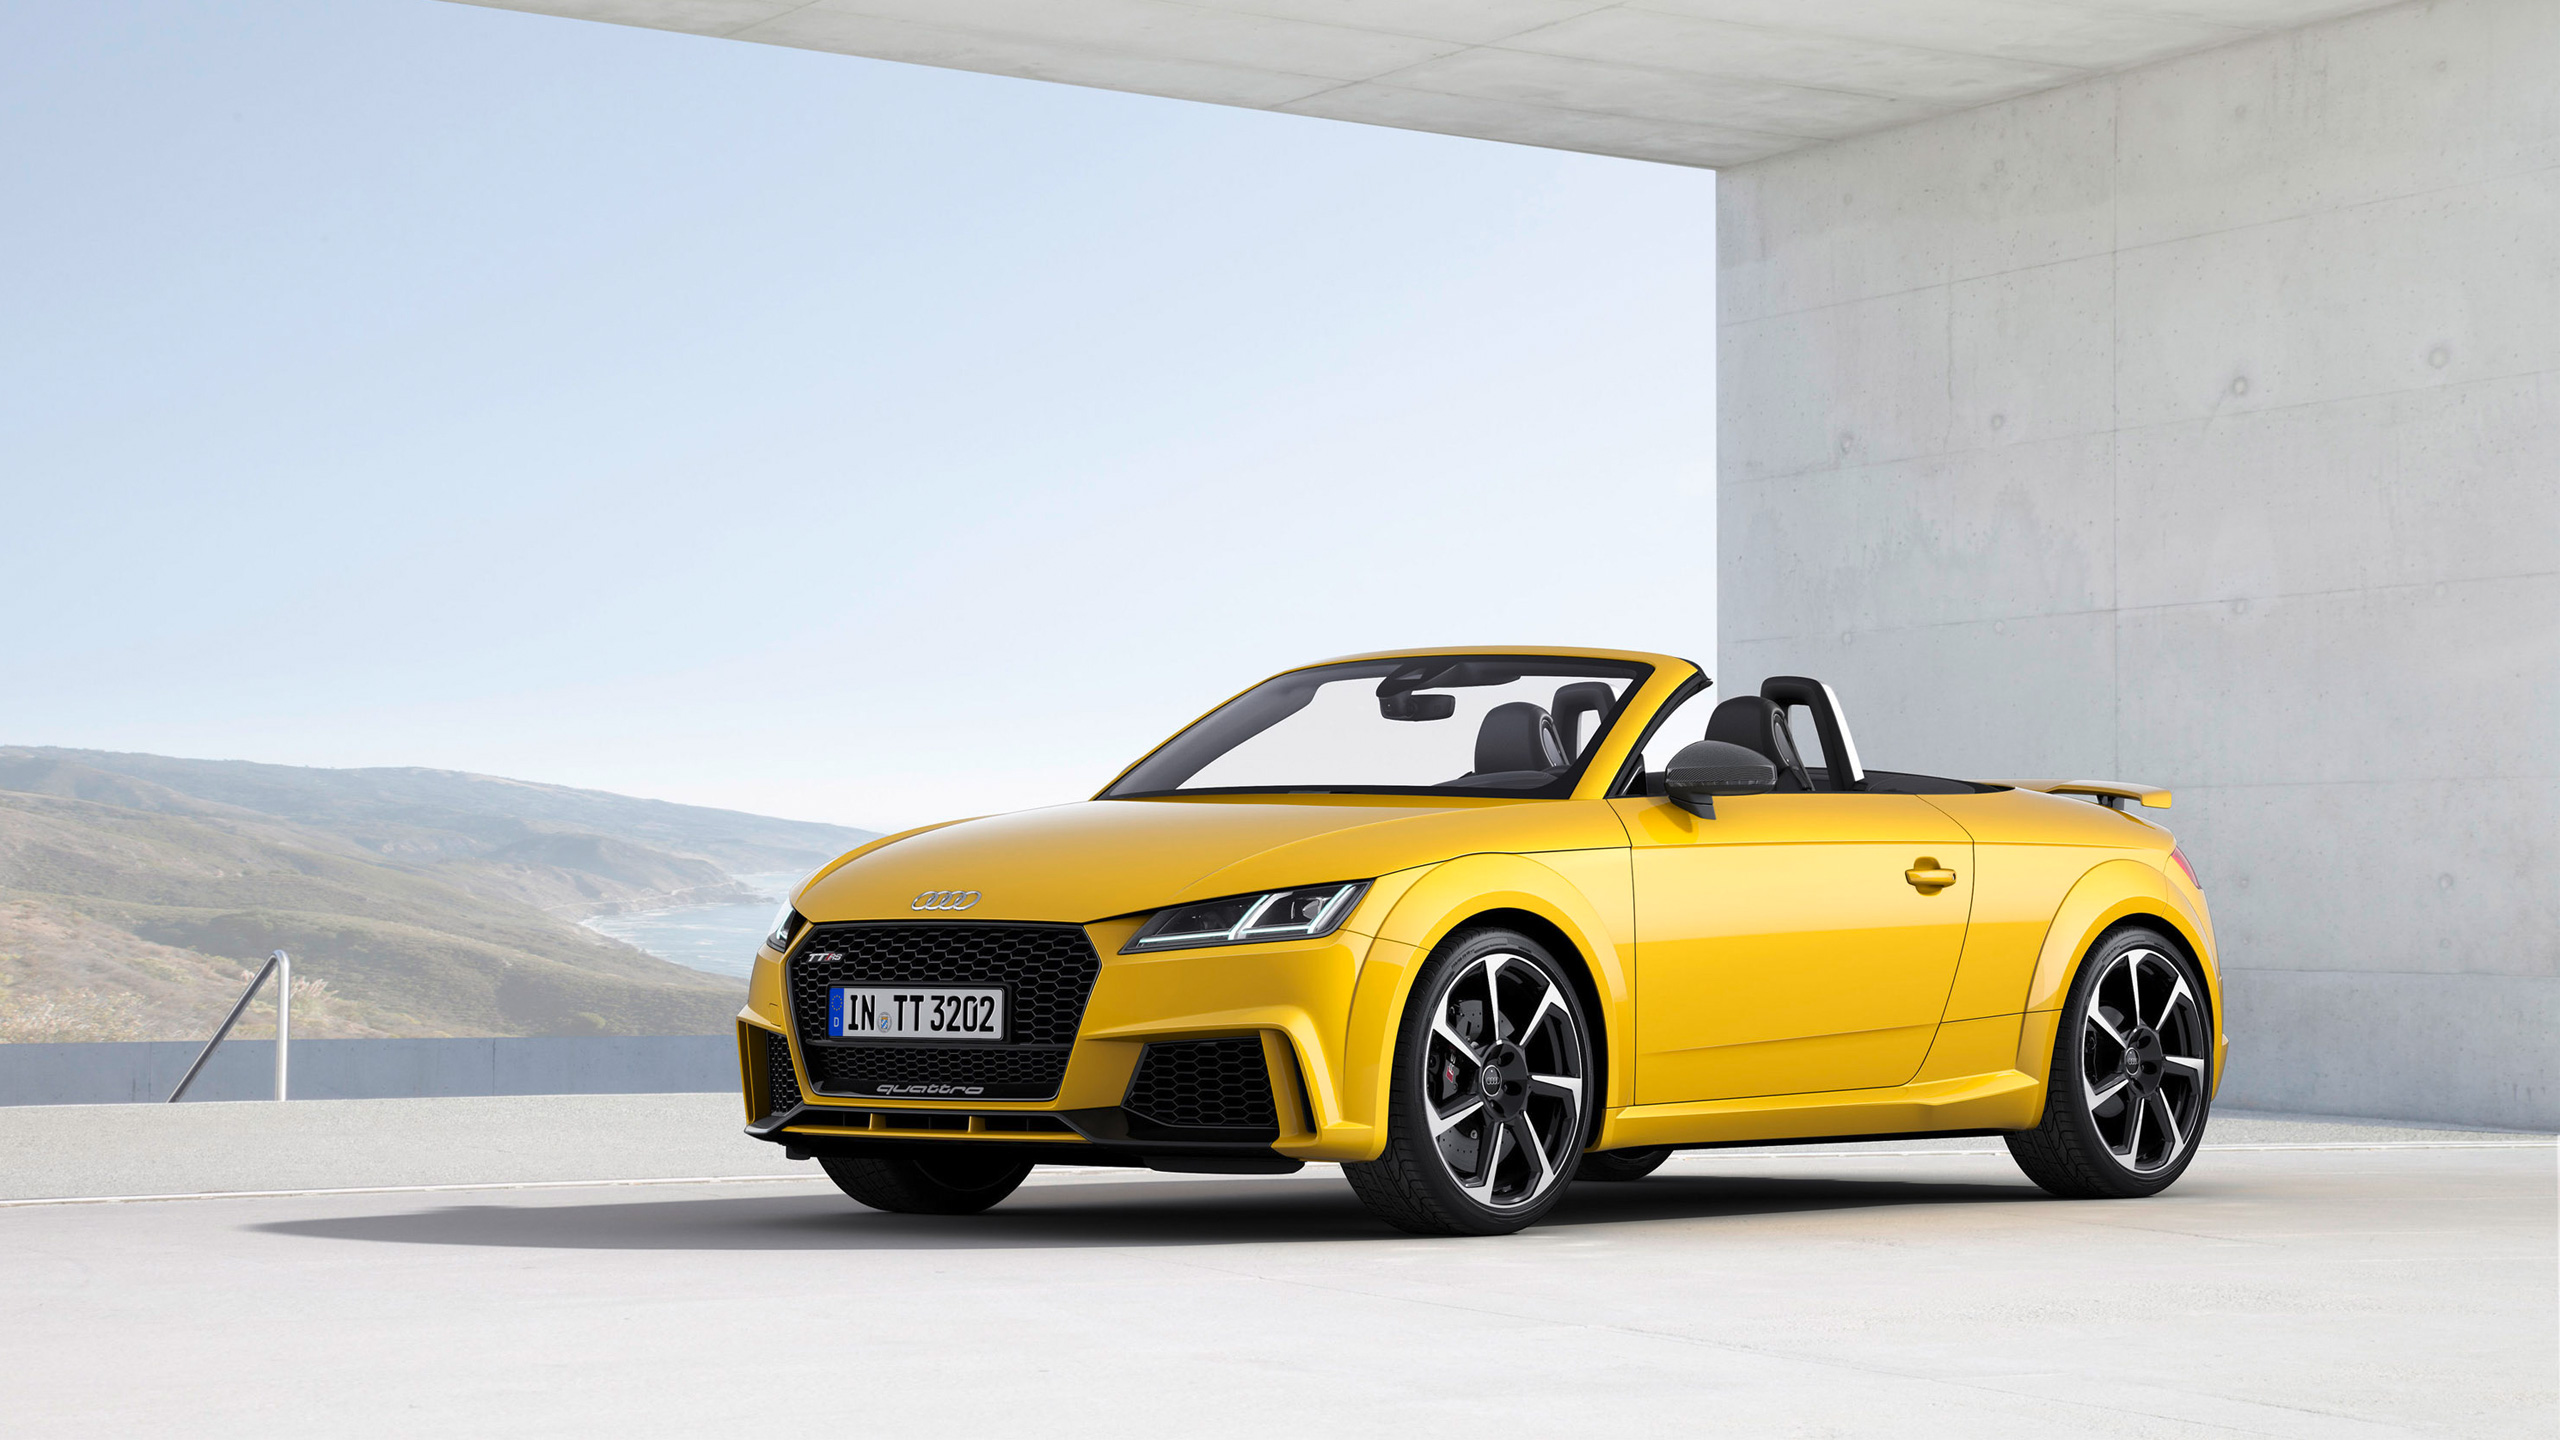 2017 Audi Tt Rs Roadster Wallpaper Hd Car Wallpapers | 2017 - 2018 ...